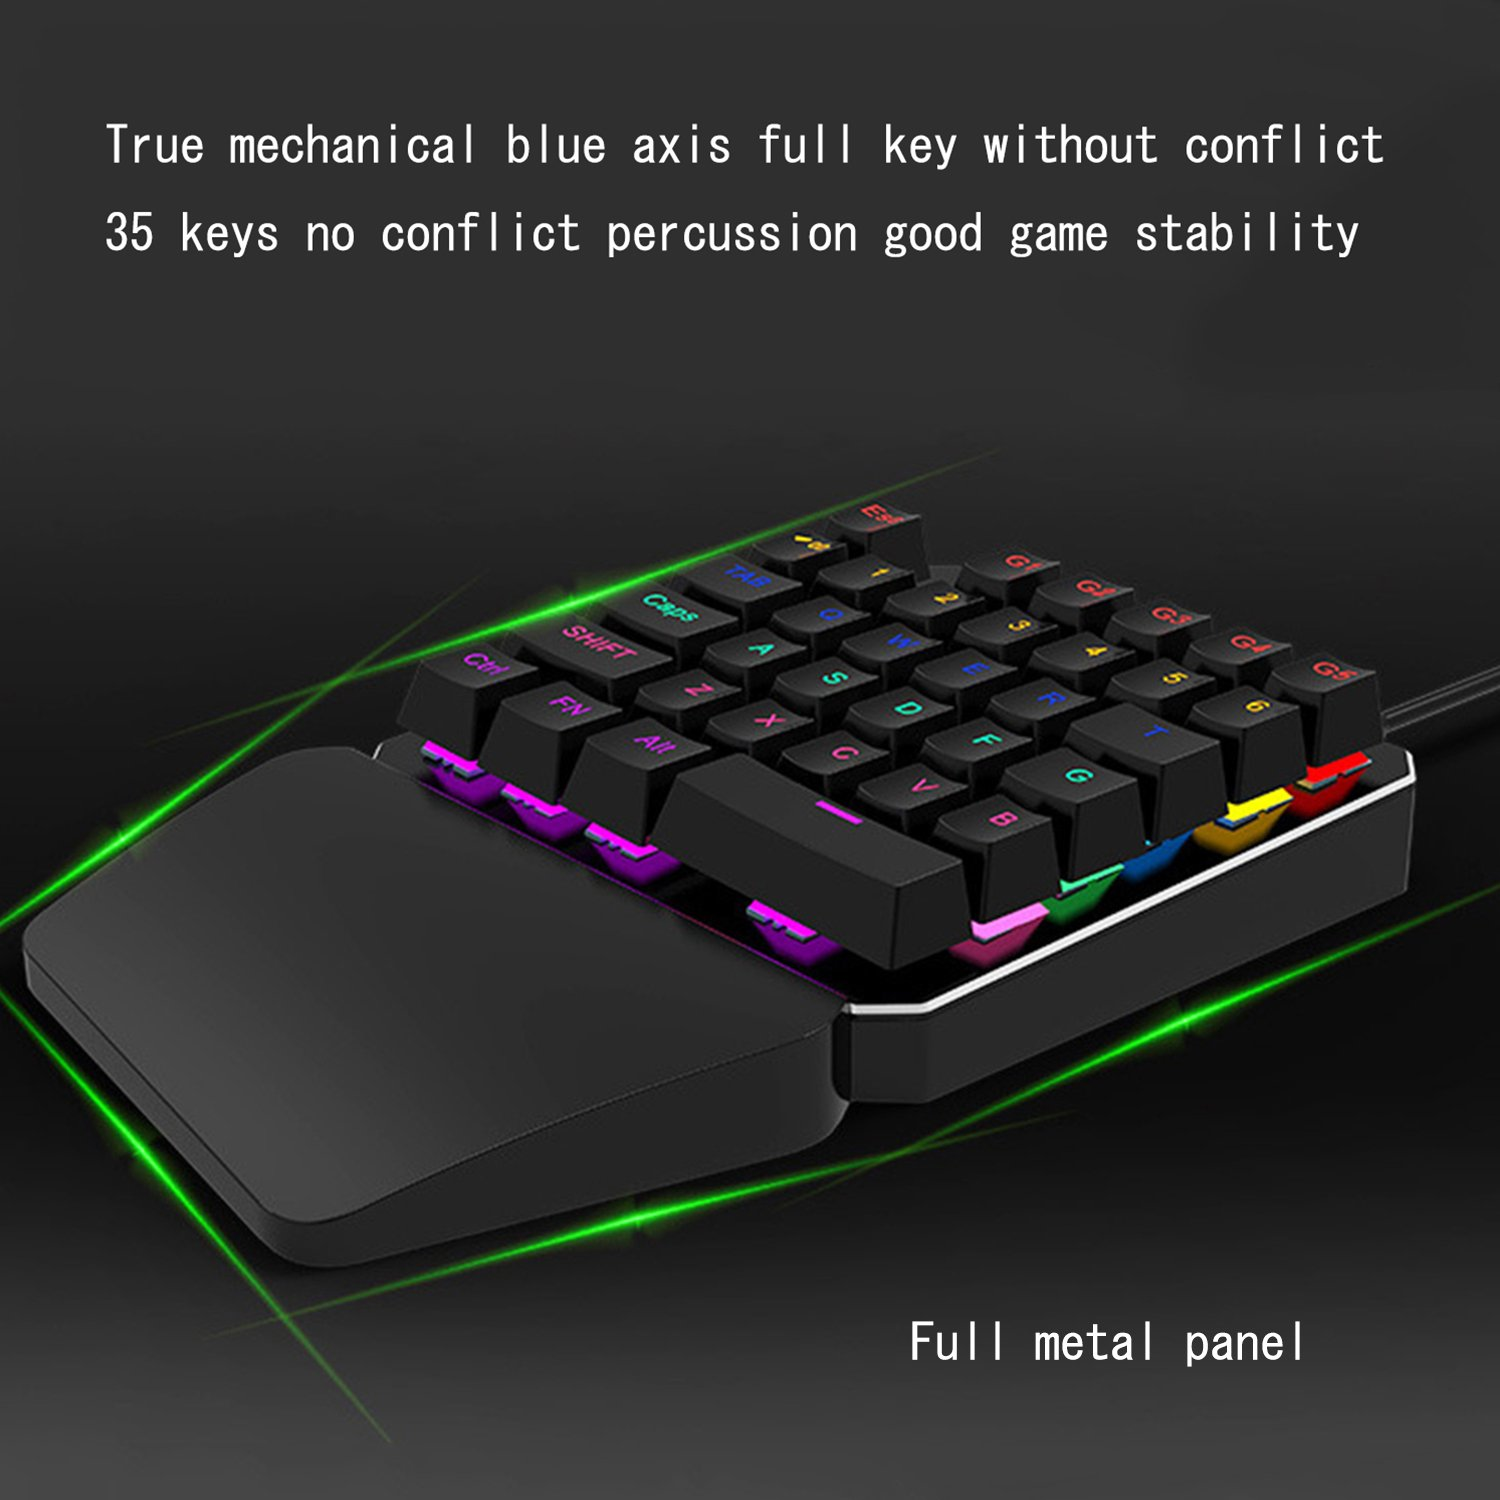 Amazon.com: Mechanical Gaming Keyboard One Handed Keyboard 35 keys Anti-ghosting Keyboard Portable Wired Game Blue Switch Keypad with 7 Color Led Backlit ...